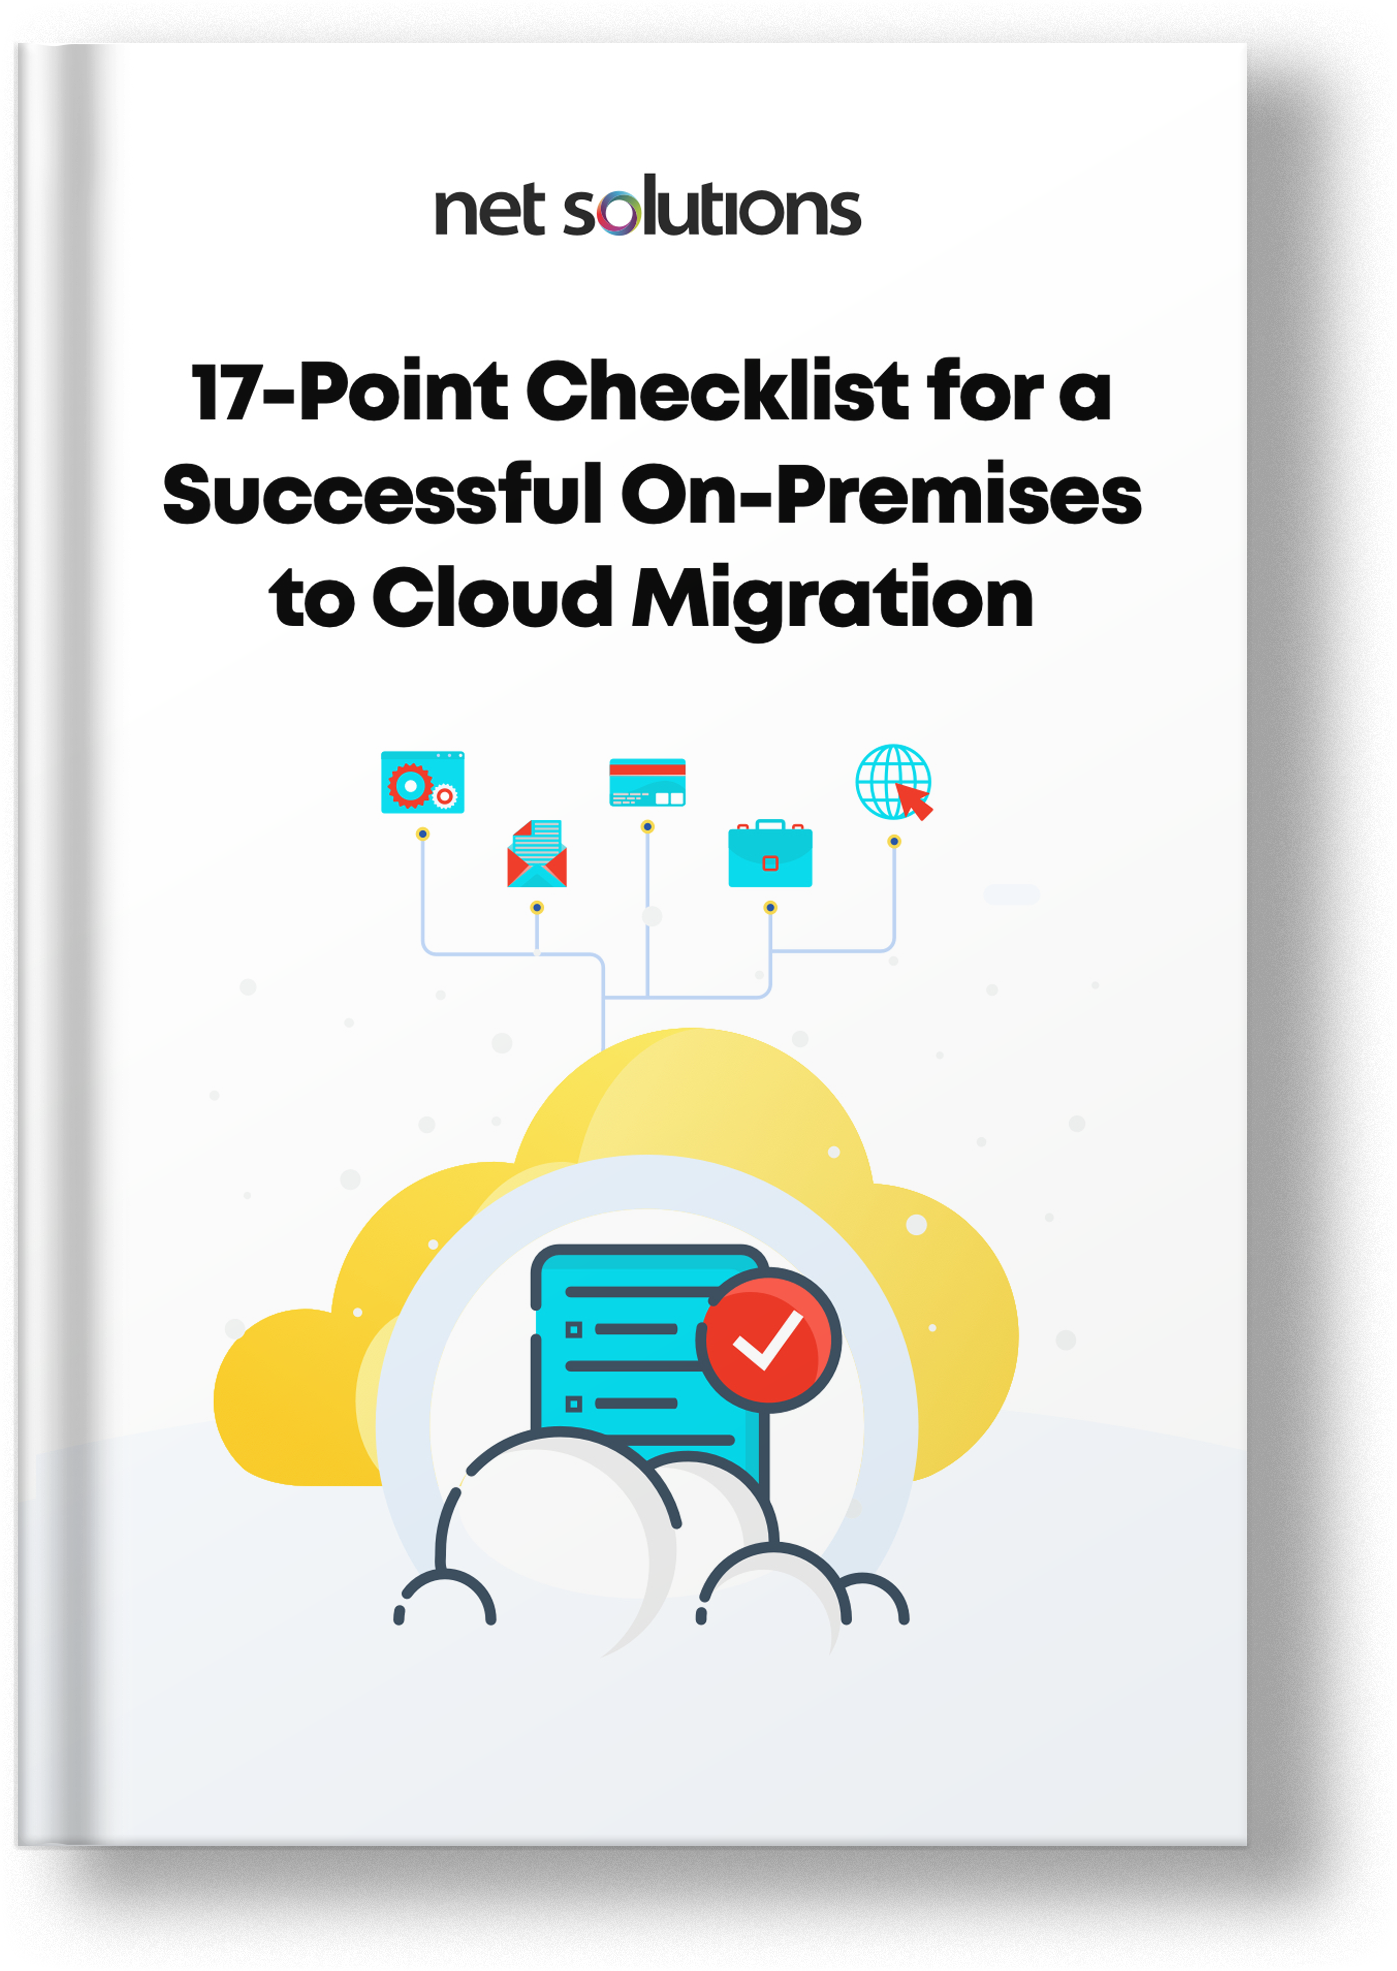 17-Point Checklist for a Successful On-Premises to Cloud Migration